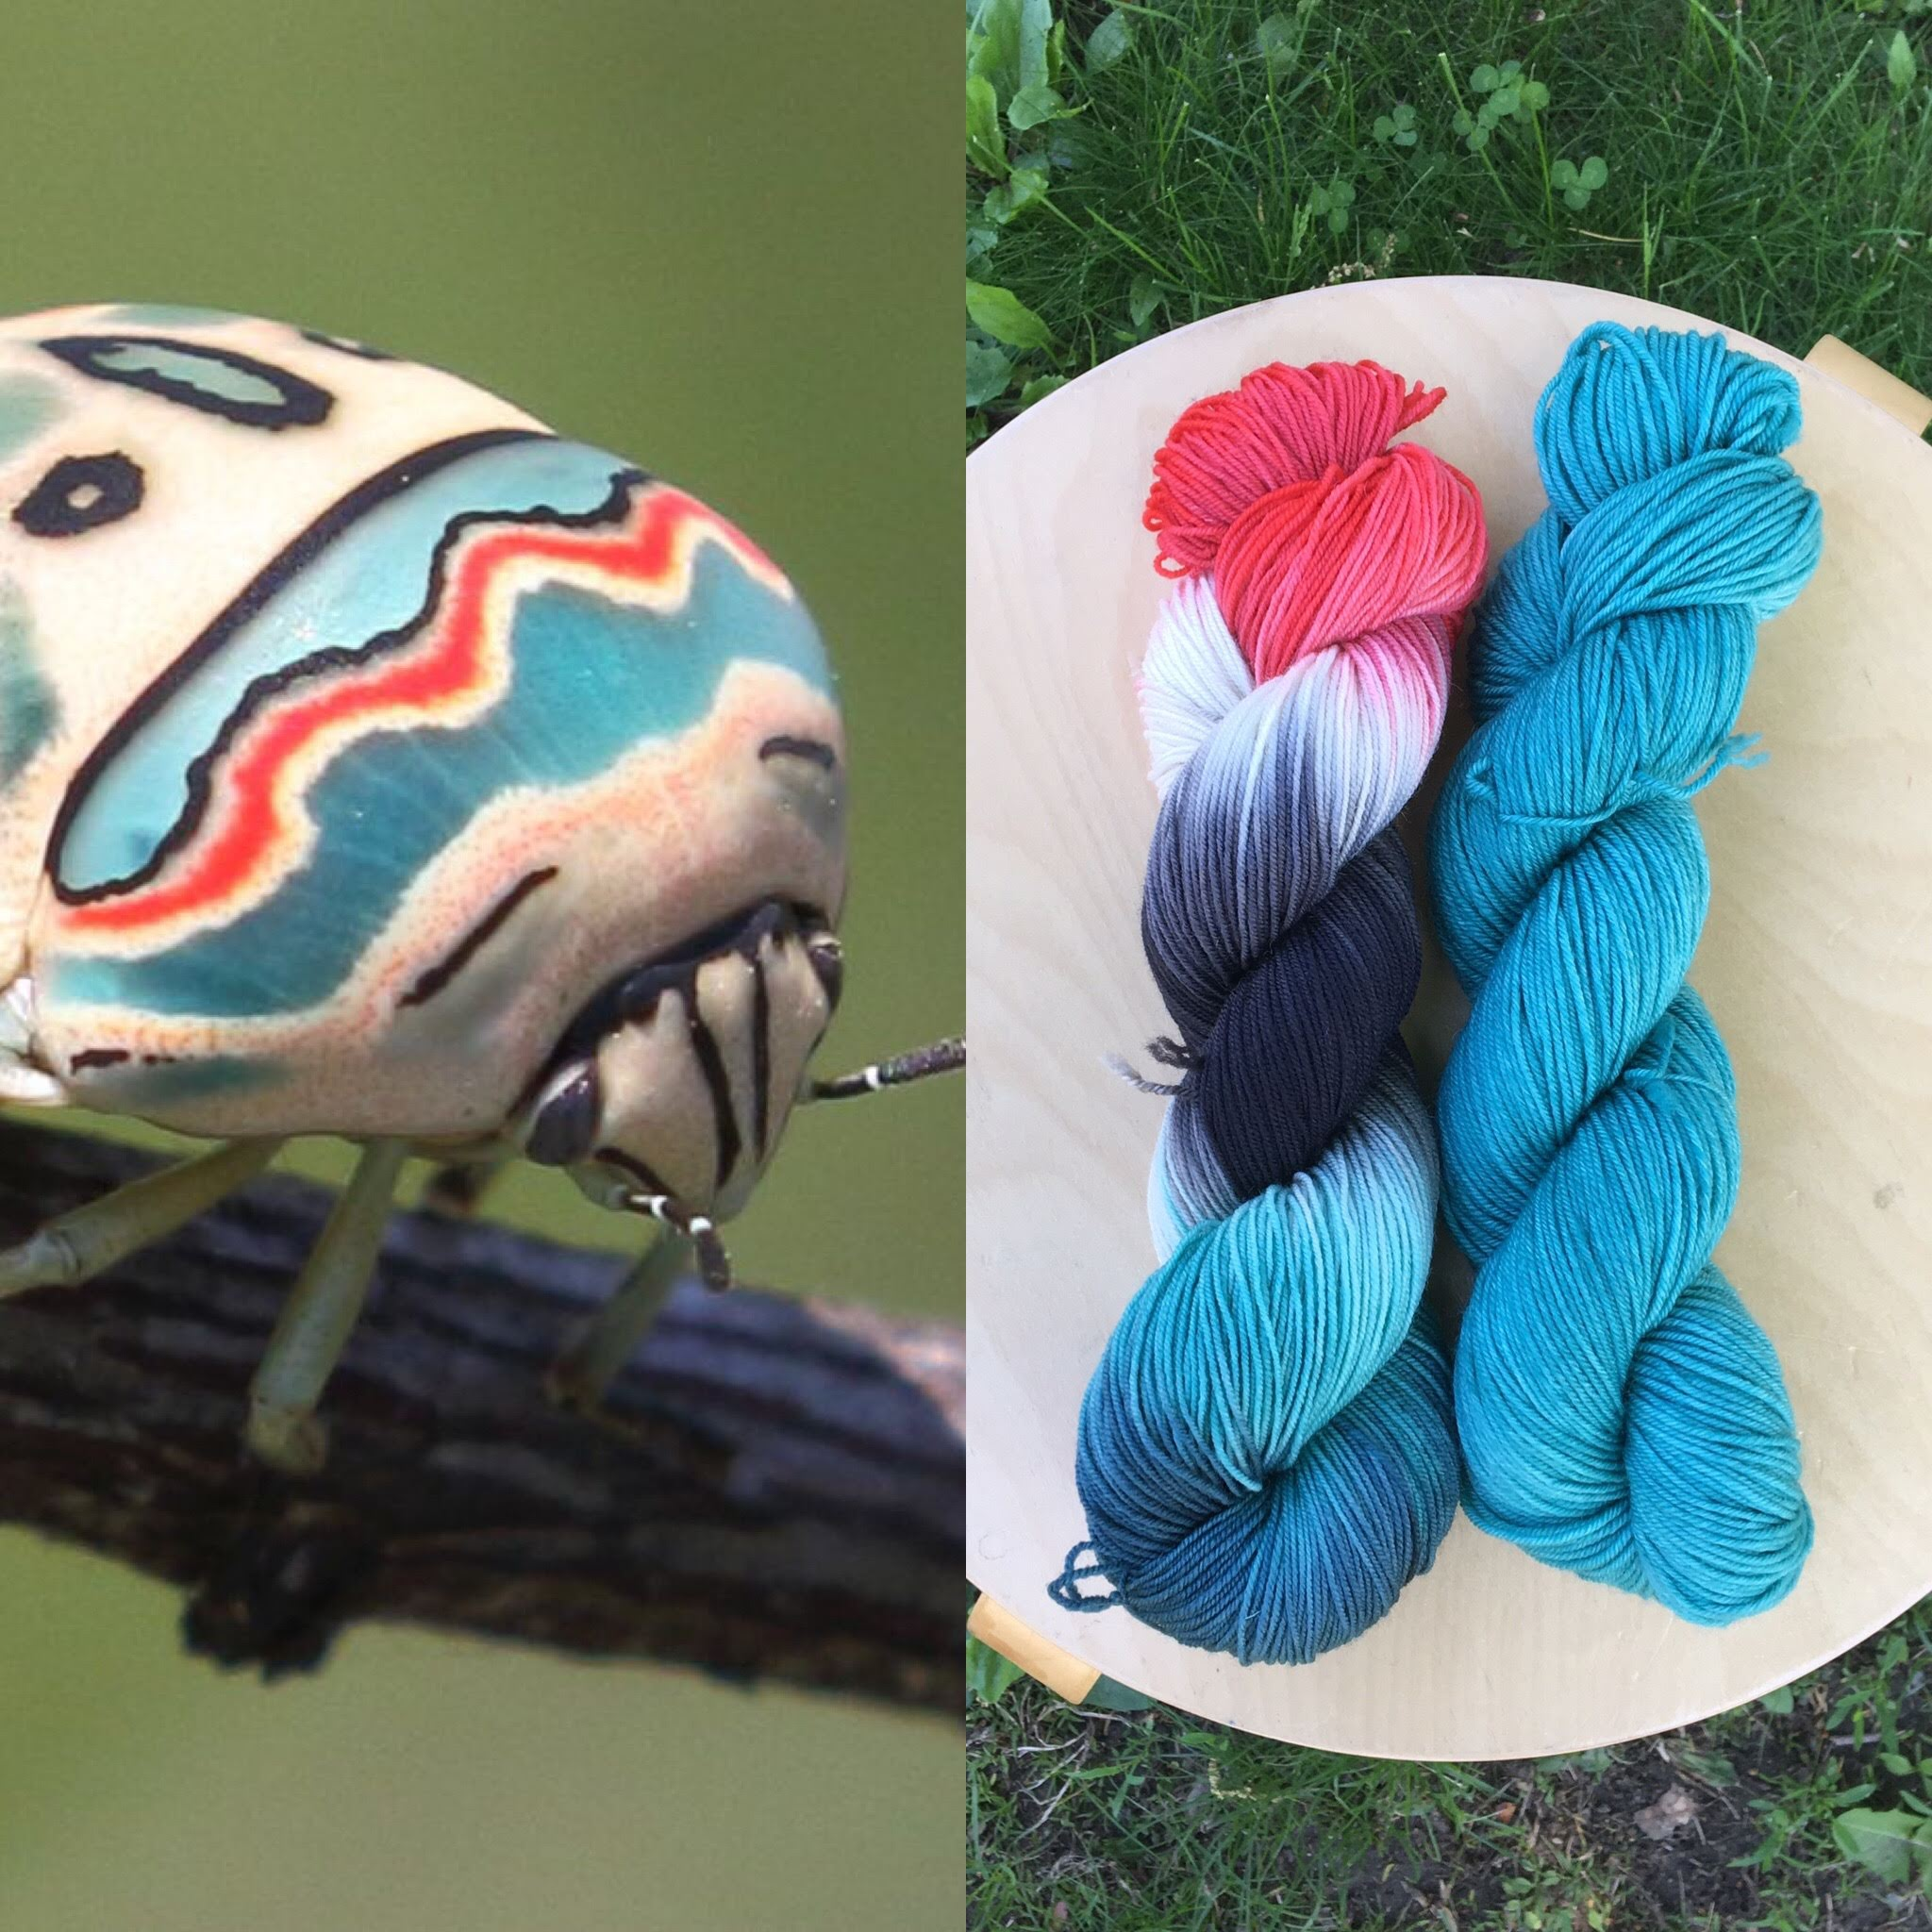 June Entomology Club. Colorway: Picasso Bug. Semisolid: Picasso Bug Blue.